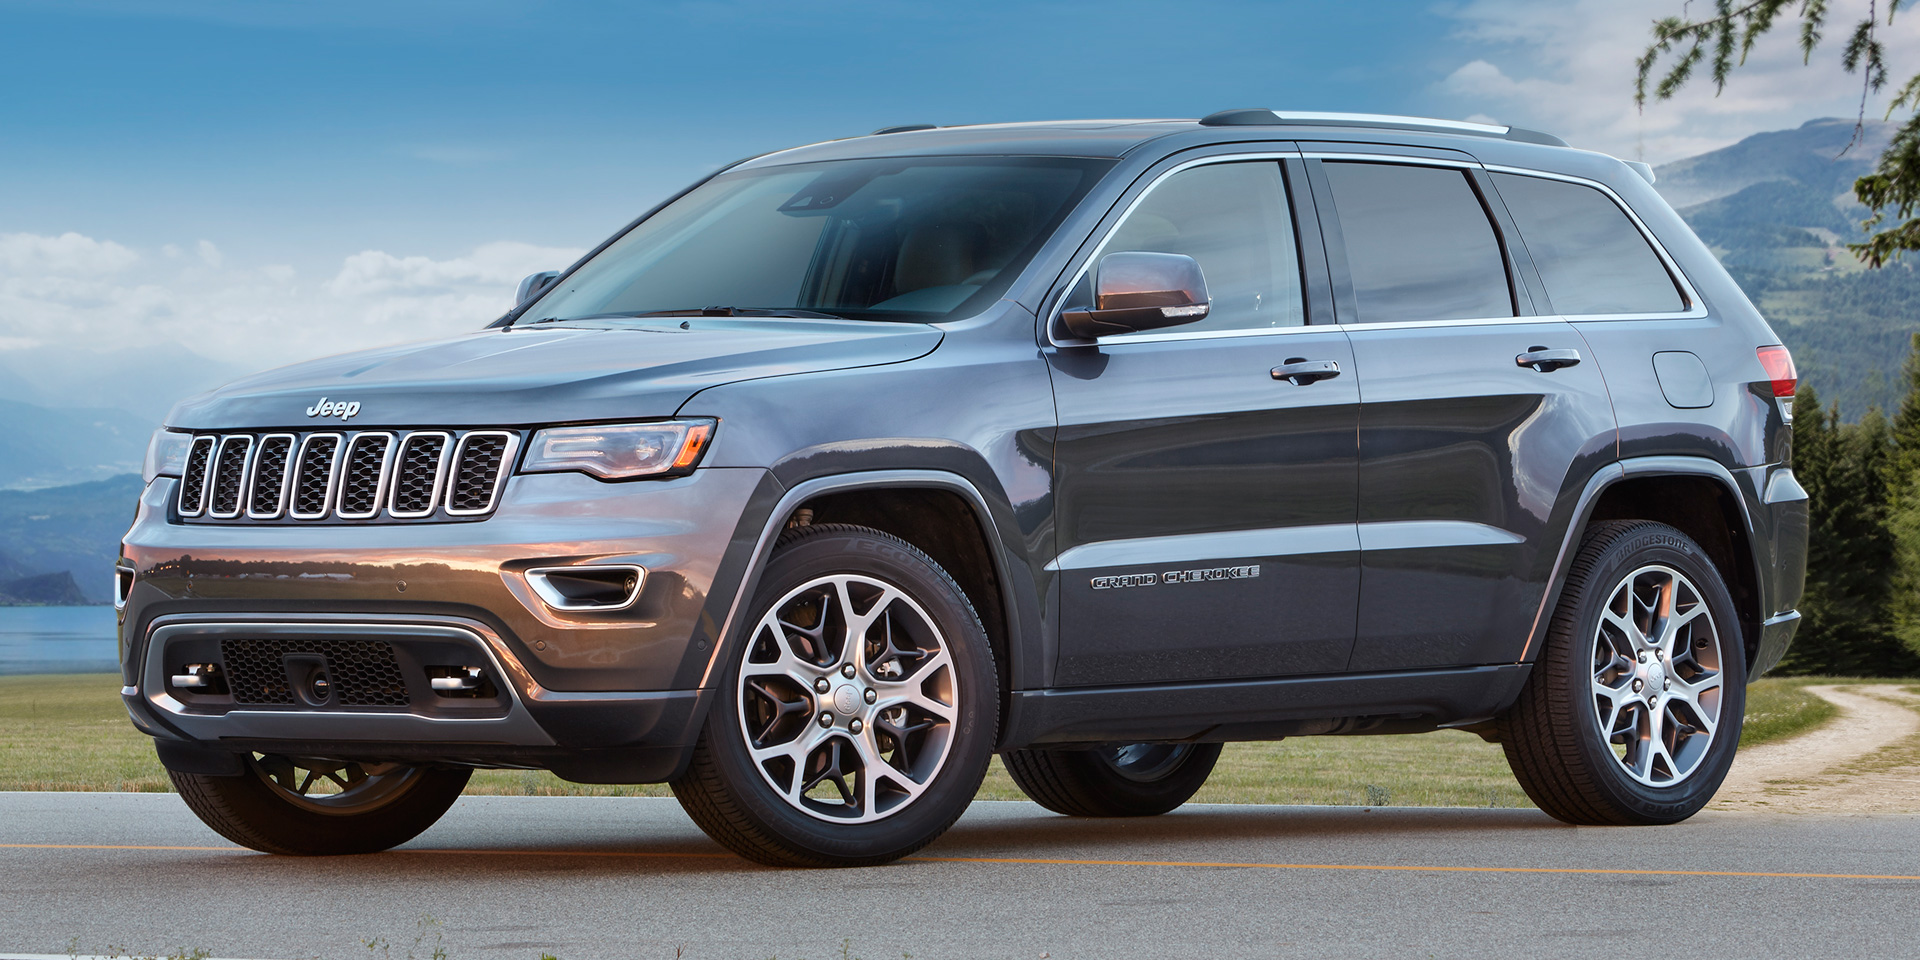 2018 - Jeep - Grand Cherokee - Vehicles on Display ...